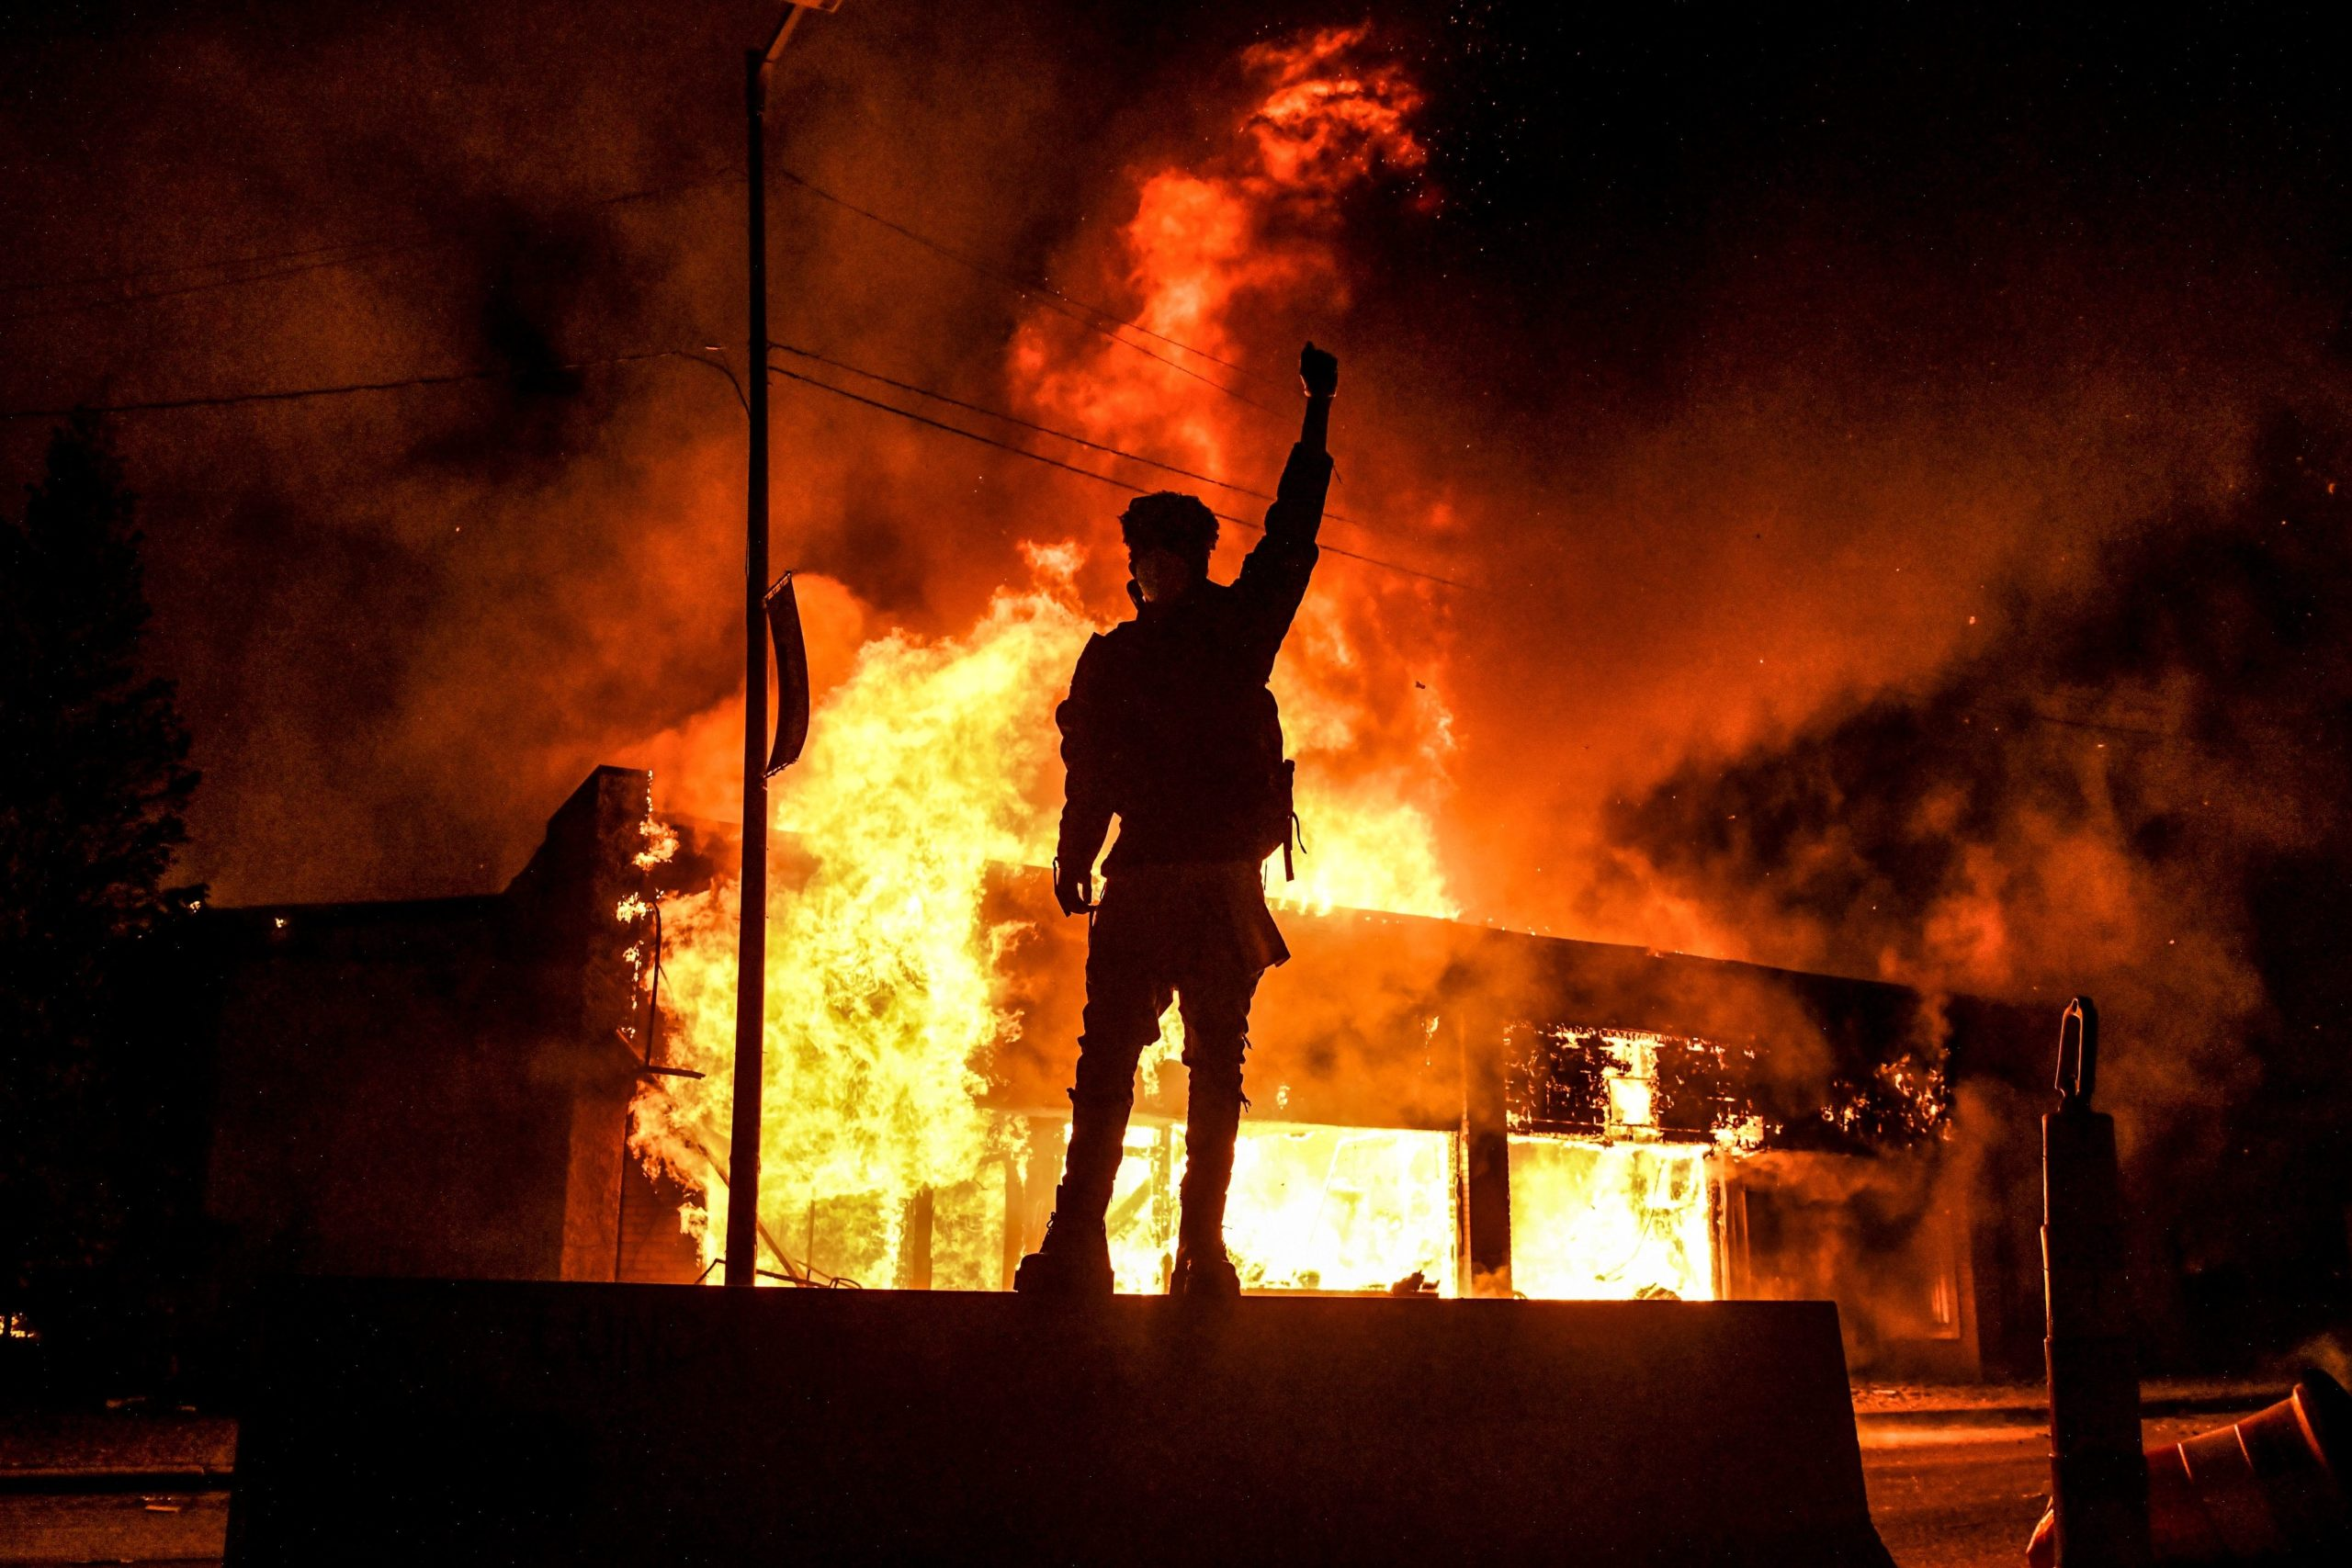 TOPSHOT - A protester reacts standing in front of a burning building set on fire during a demonstration in Minneapolis, Minnesota, on May 29, 2020, over the death of George Floyd, a black man who died after a white policeman kneeled on his neck for several minutes. - Violent protests erupted across the United States late on May 29 over the death of a handcuffed black man in police custody, with murder charges laid against the arresting Minneapolis officer failing to quell seething anger. (Photo by Chandan KHANNA / AFP) (Photo by CHANDAN KHANNA/AFP via Getty Images)